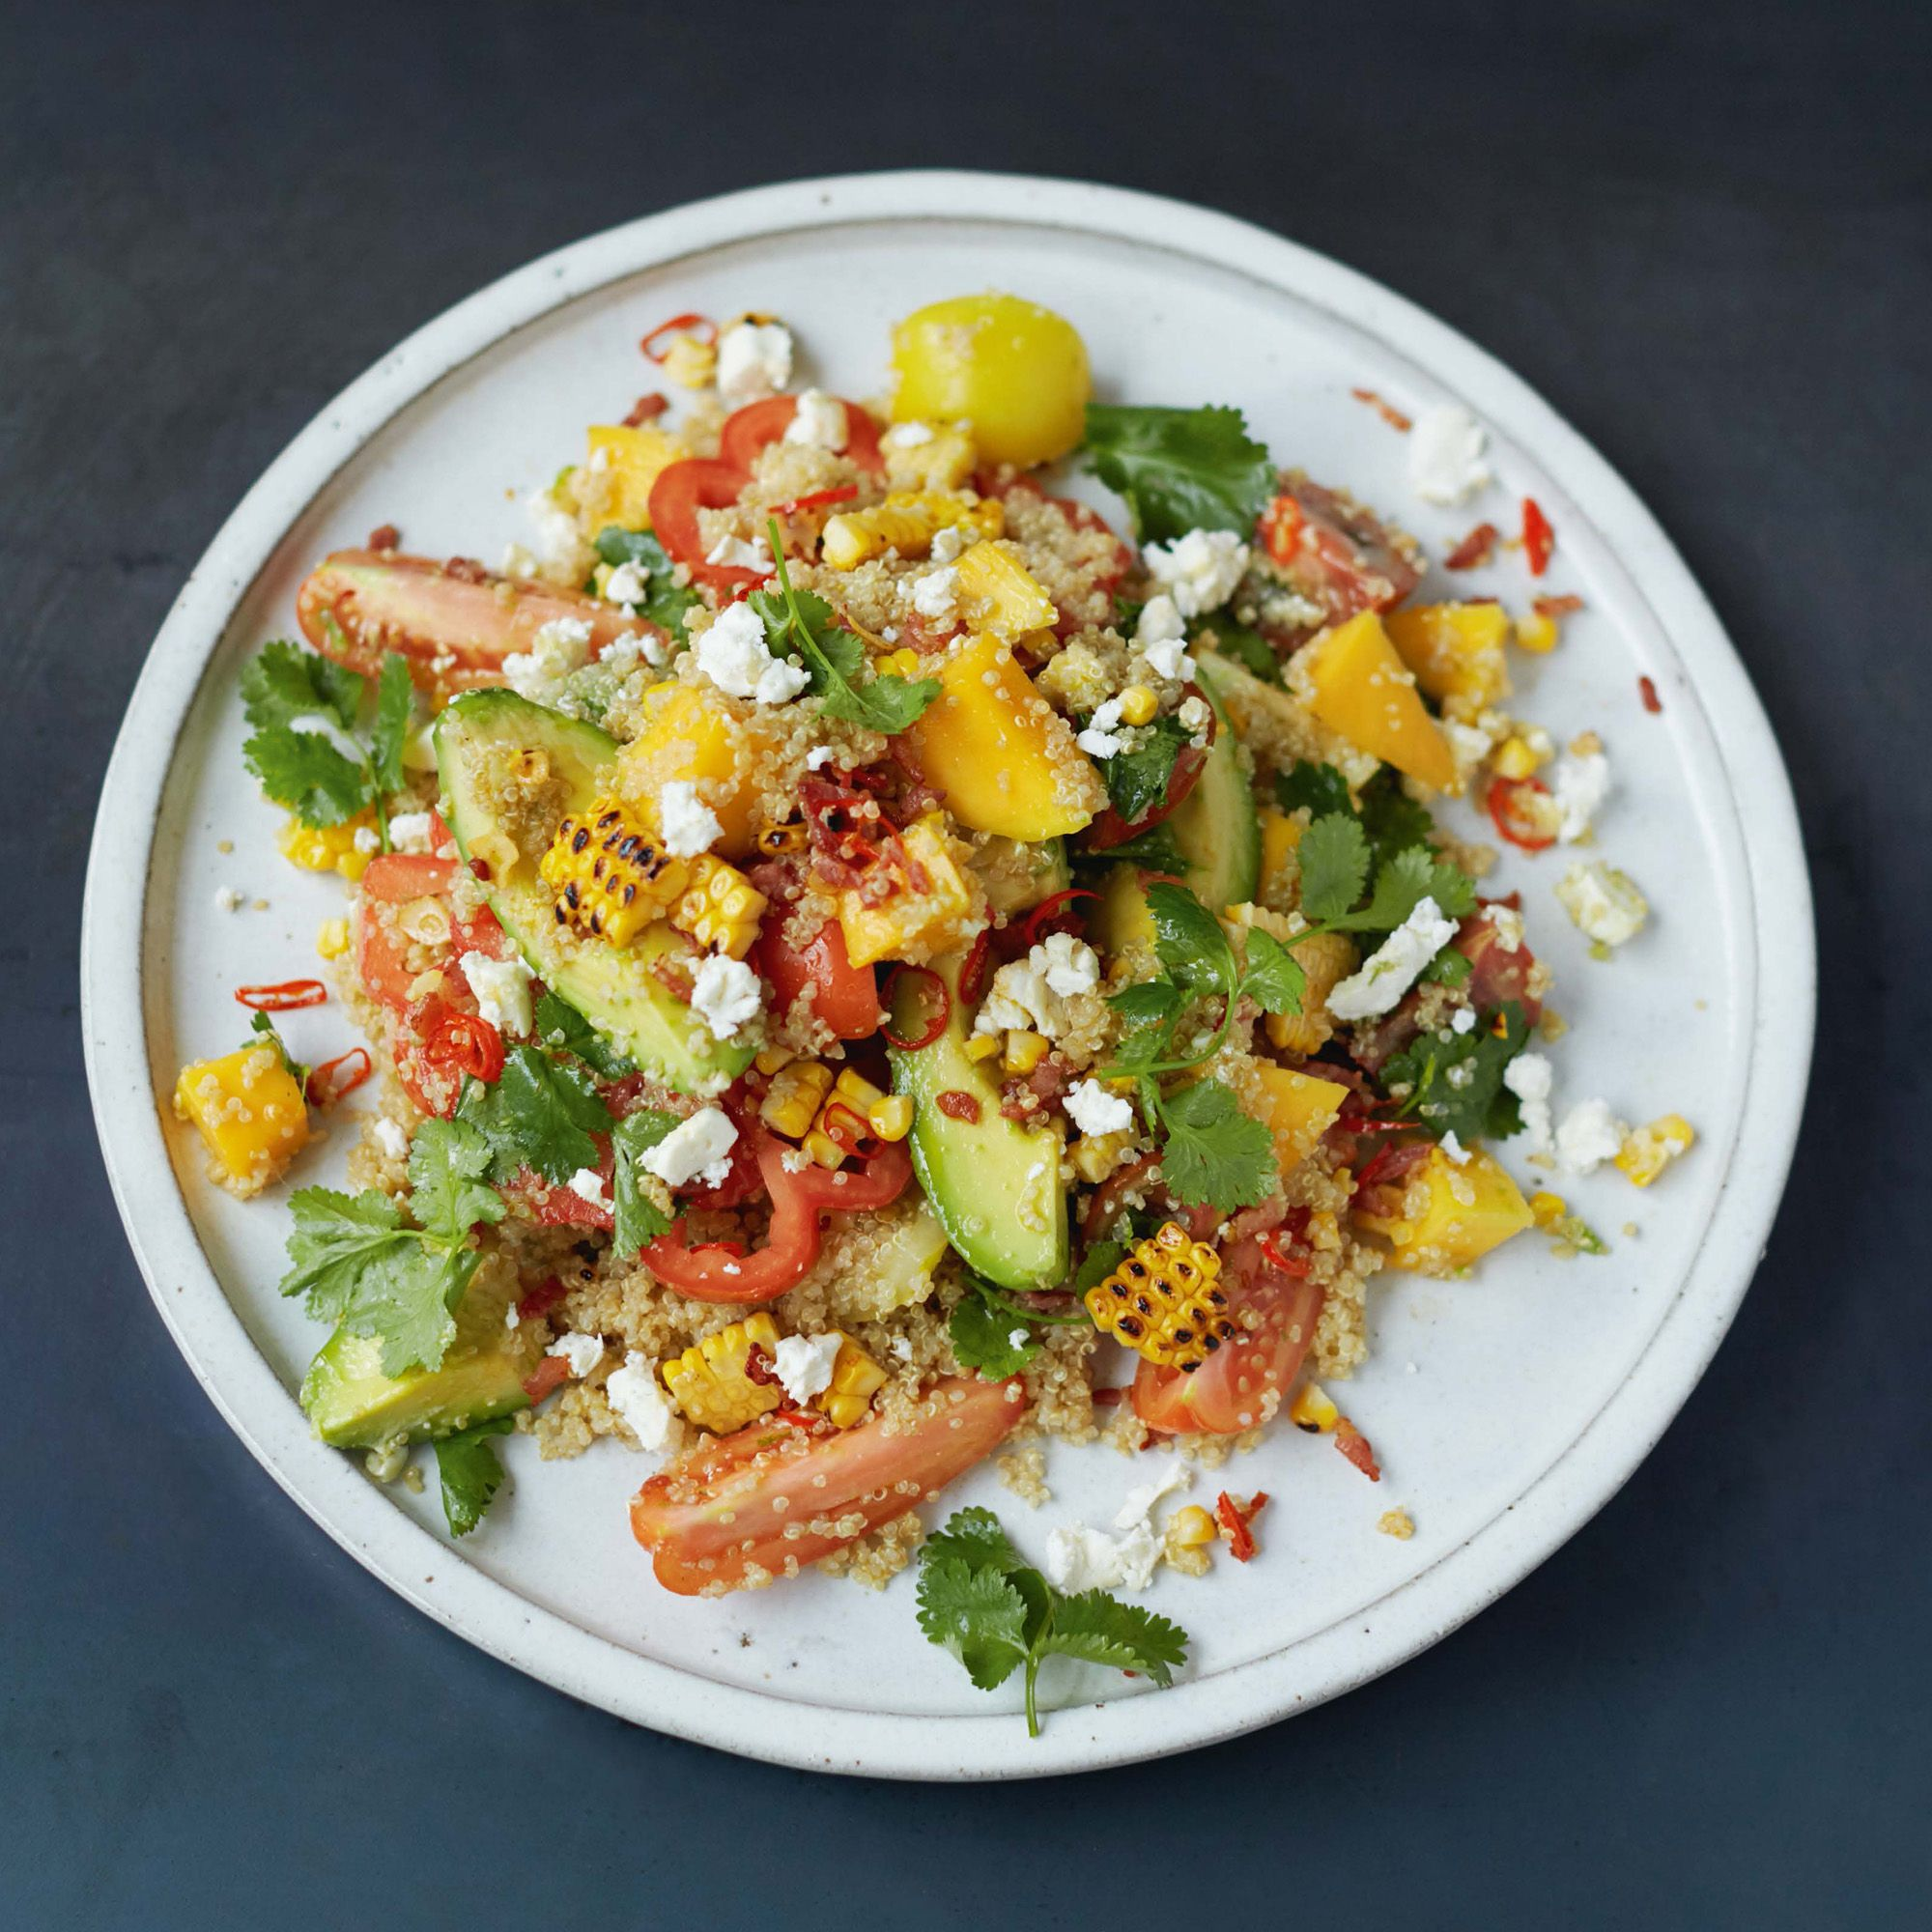 Jamie Oliver's grilled corn and quinoa salad is lovely salad that you can prepare with barbecued corn